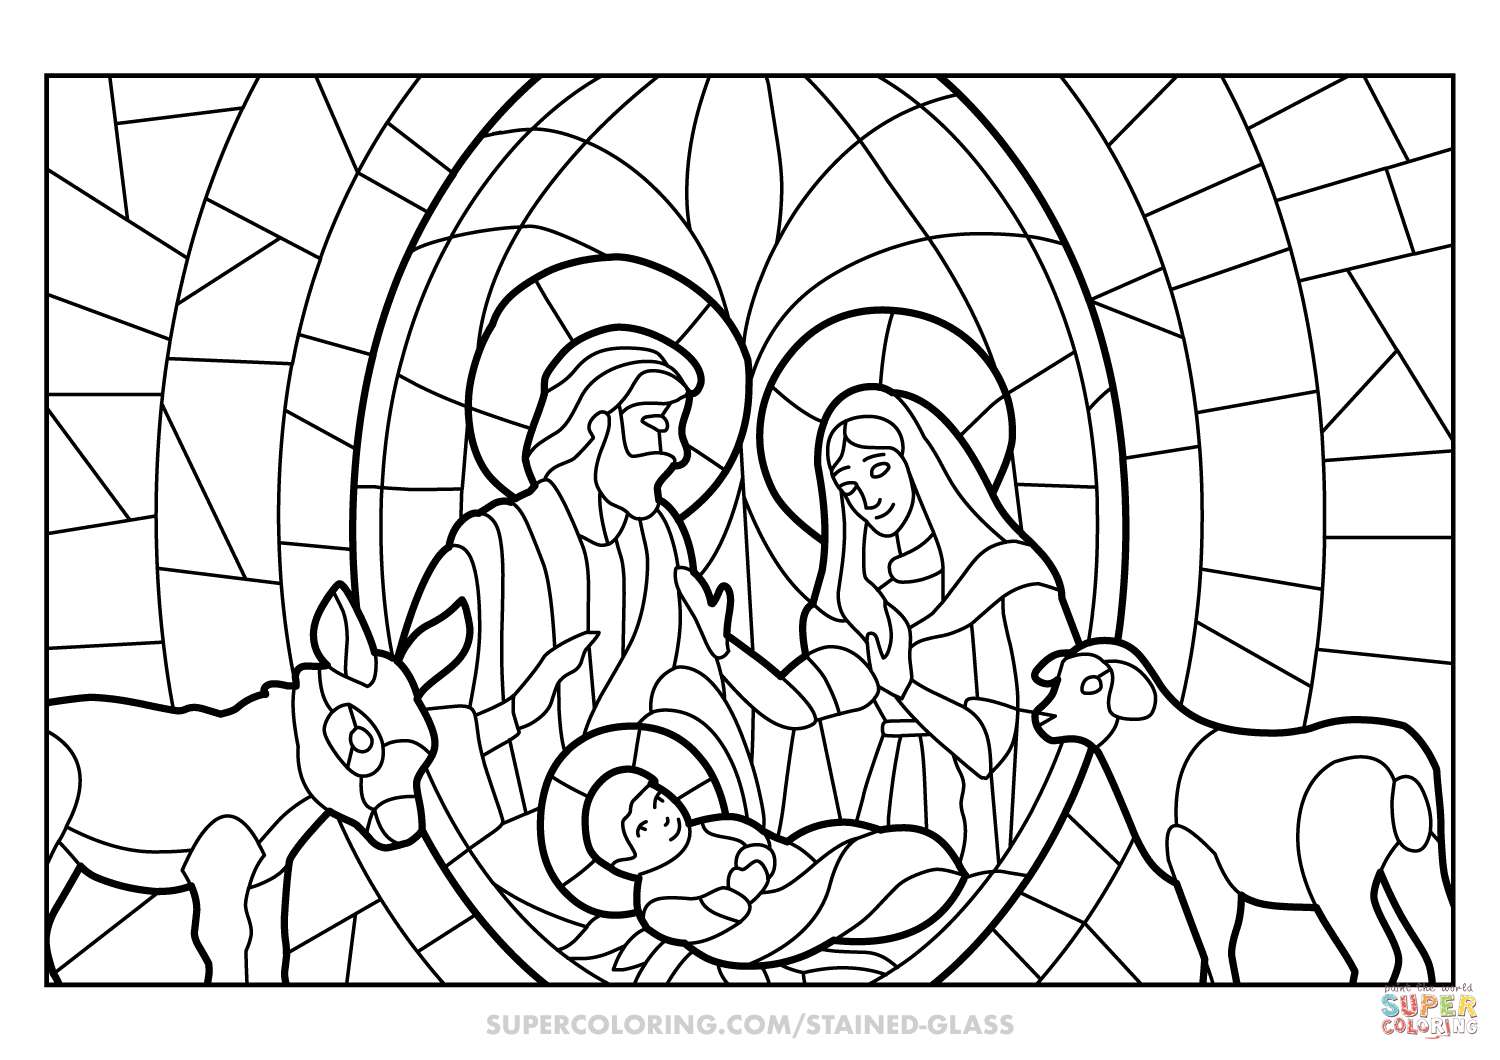 Christmas Nativity Scene Stained Glass Coloring Page Free Printable Coloring Pages Nativity Coloring Pages Nativity Coloring Christmas Coloring Books